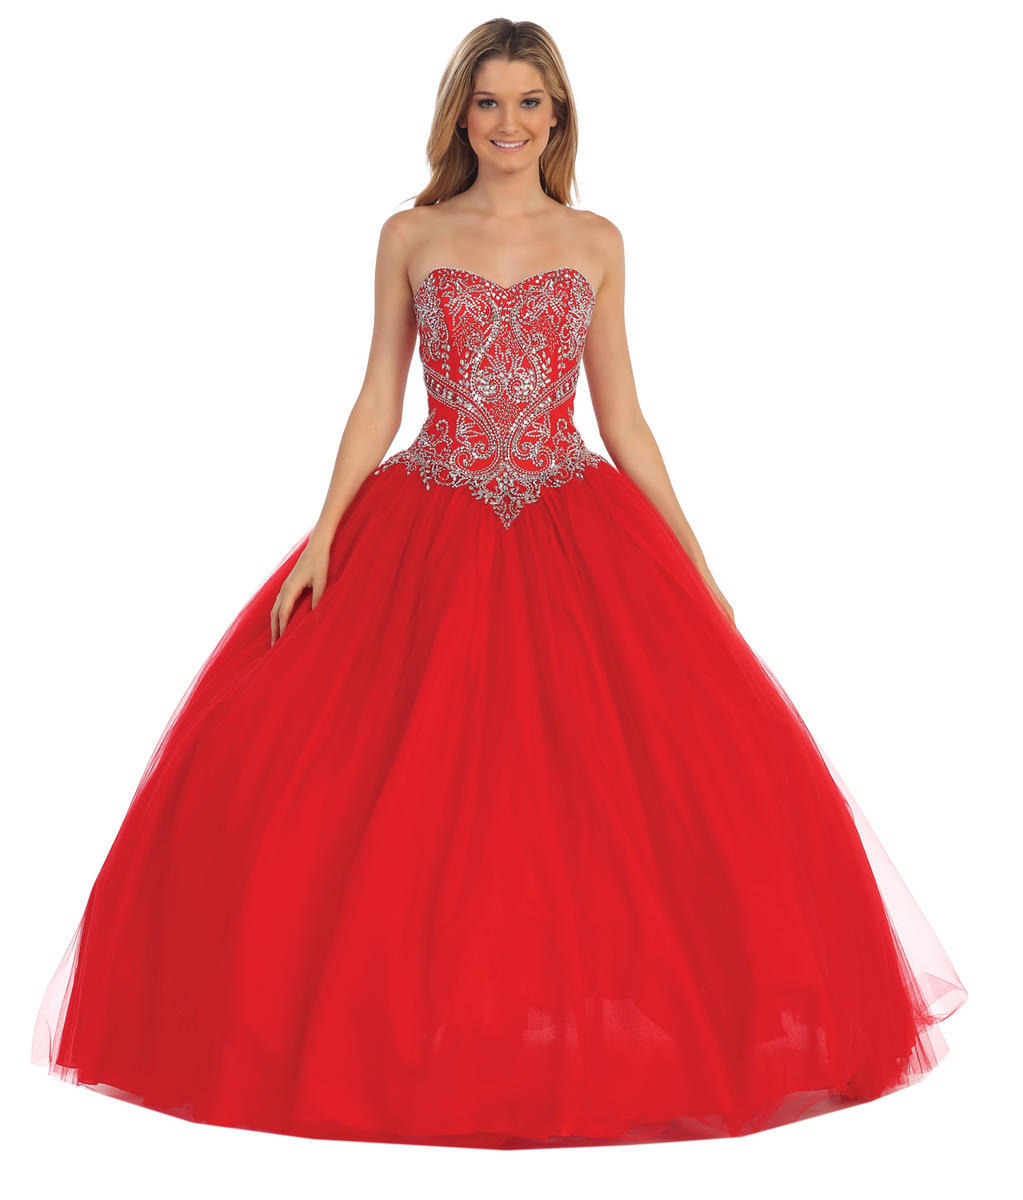 Dancing Queen - Strapless Embellished Ball Gown